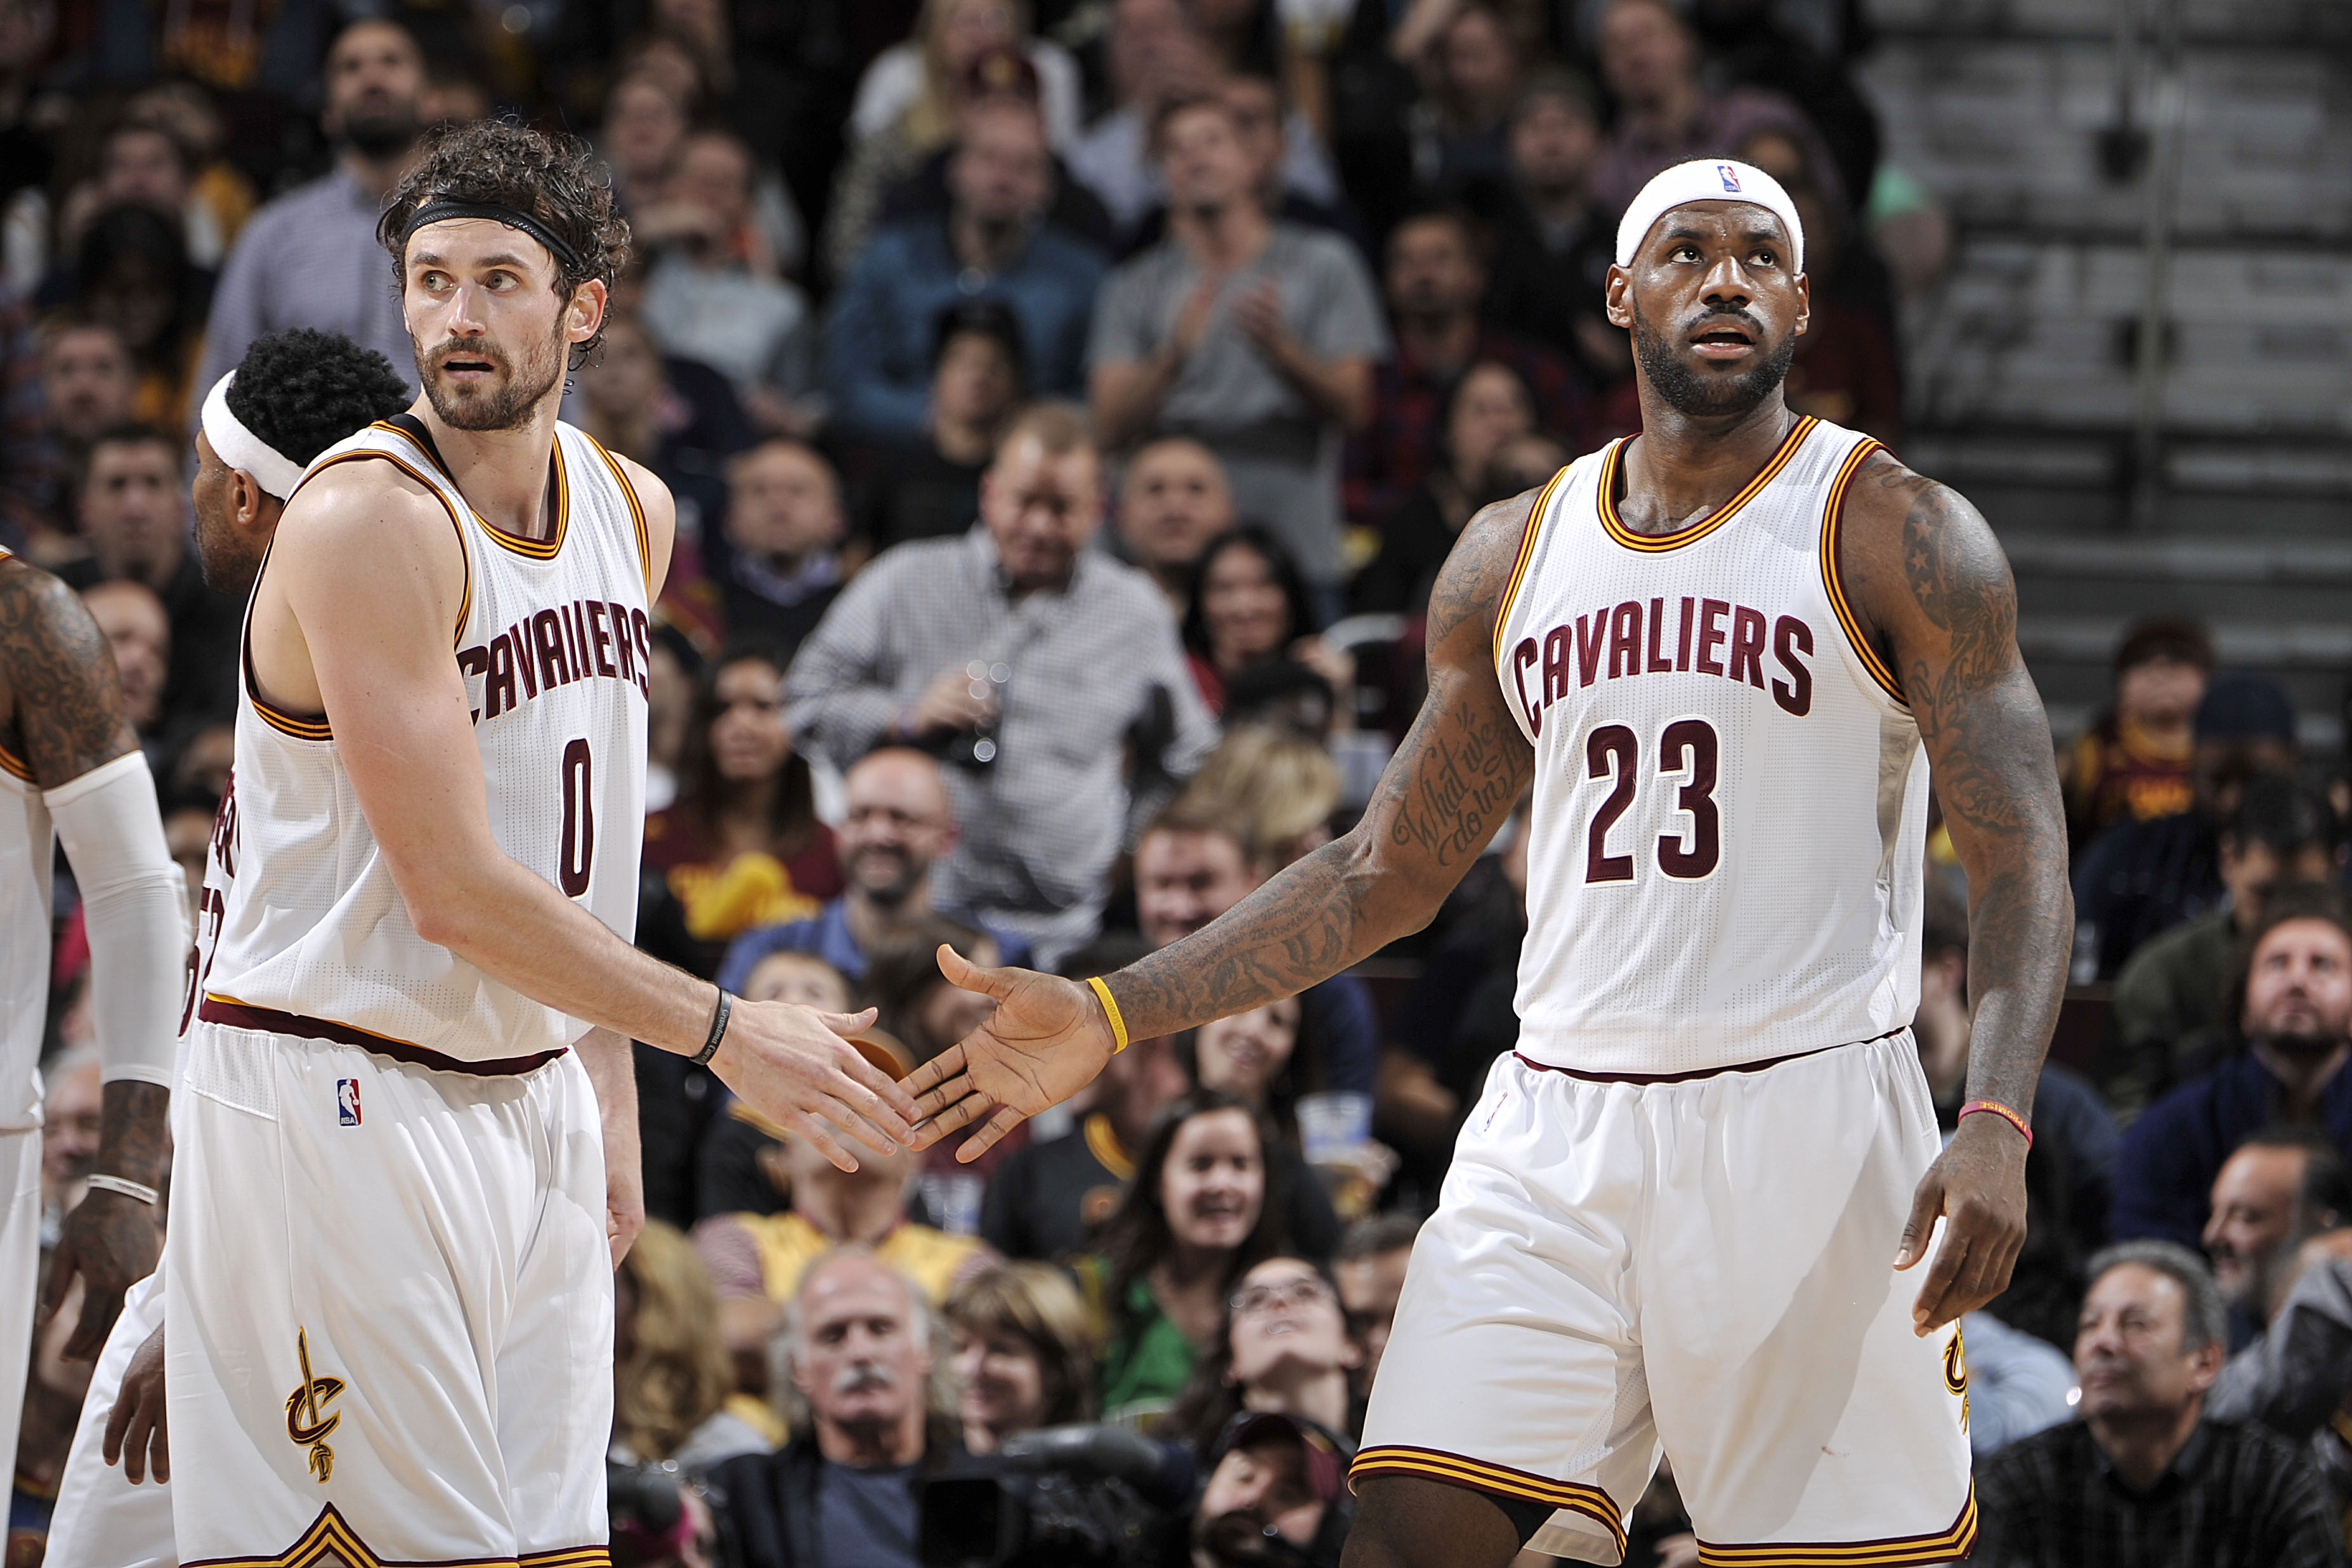 CLEVELAND, OH - NOVEMBER 28: LeBron James #23 and Kevin Love #0 of the Cleveland Cavaliers high five each other during the game against the Brooklyn Nets on November 28, 2015 at Quicken Loans Arena in Cleveland, Ohio.  (Photo by David Liam Kyle/NBAE via G